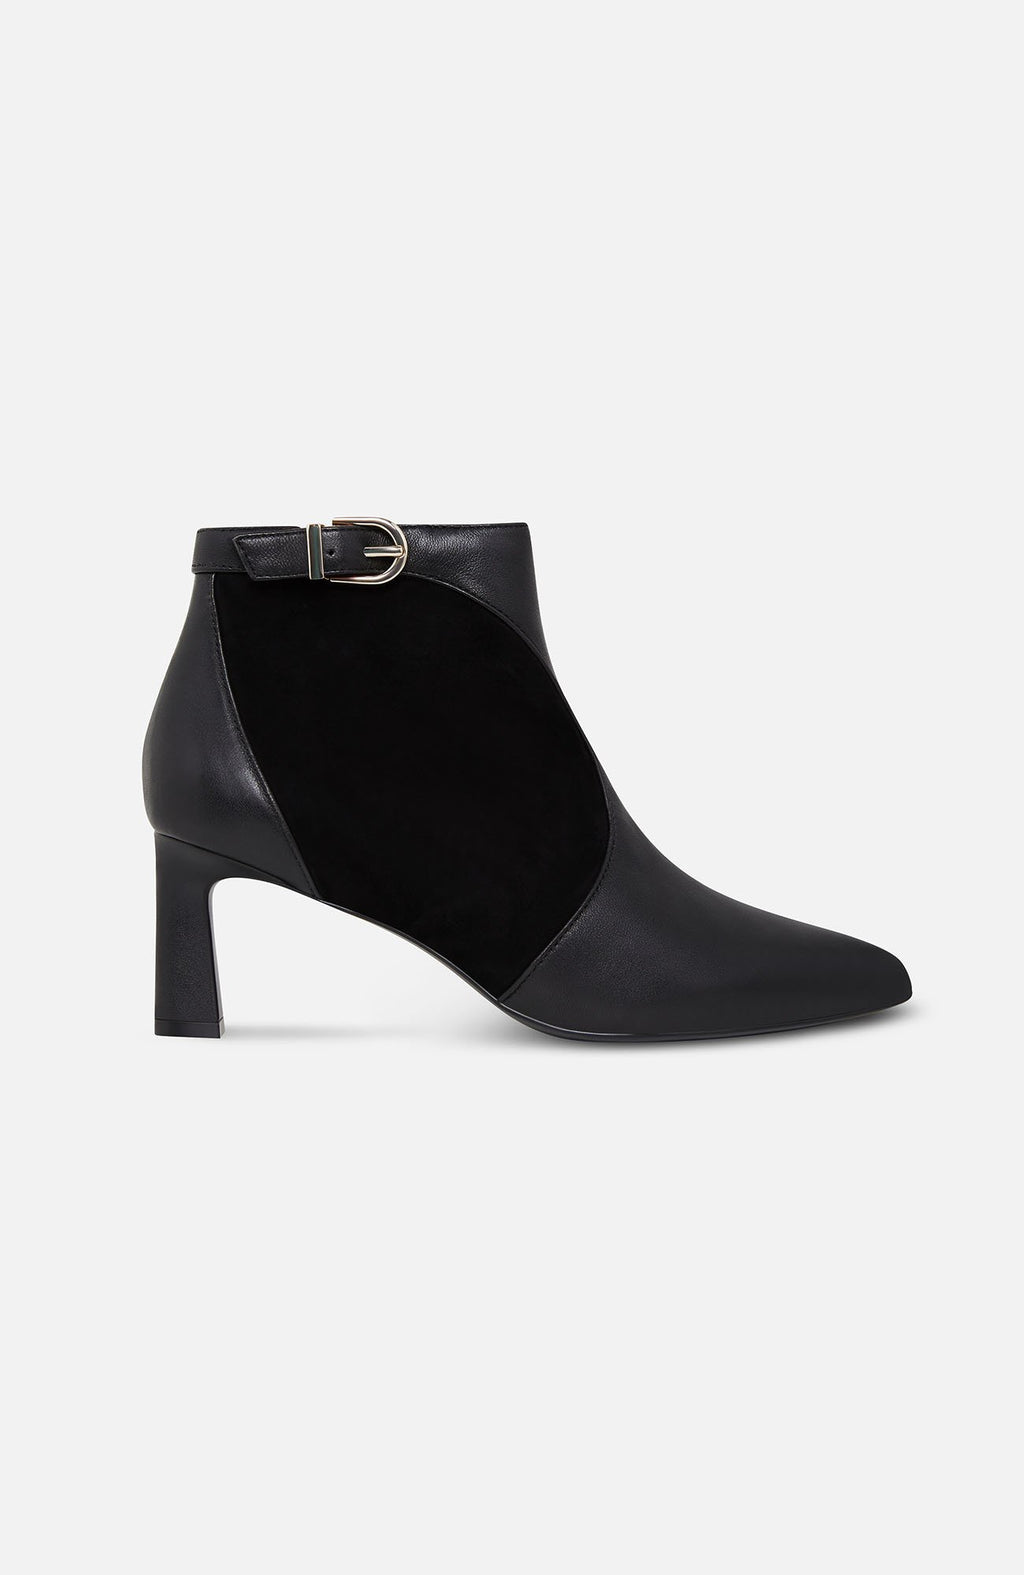 Joie Rawly Black Ankle Boots